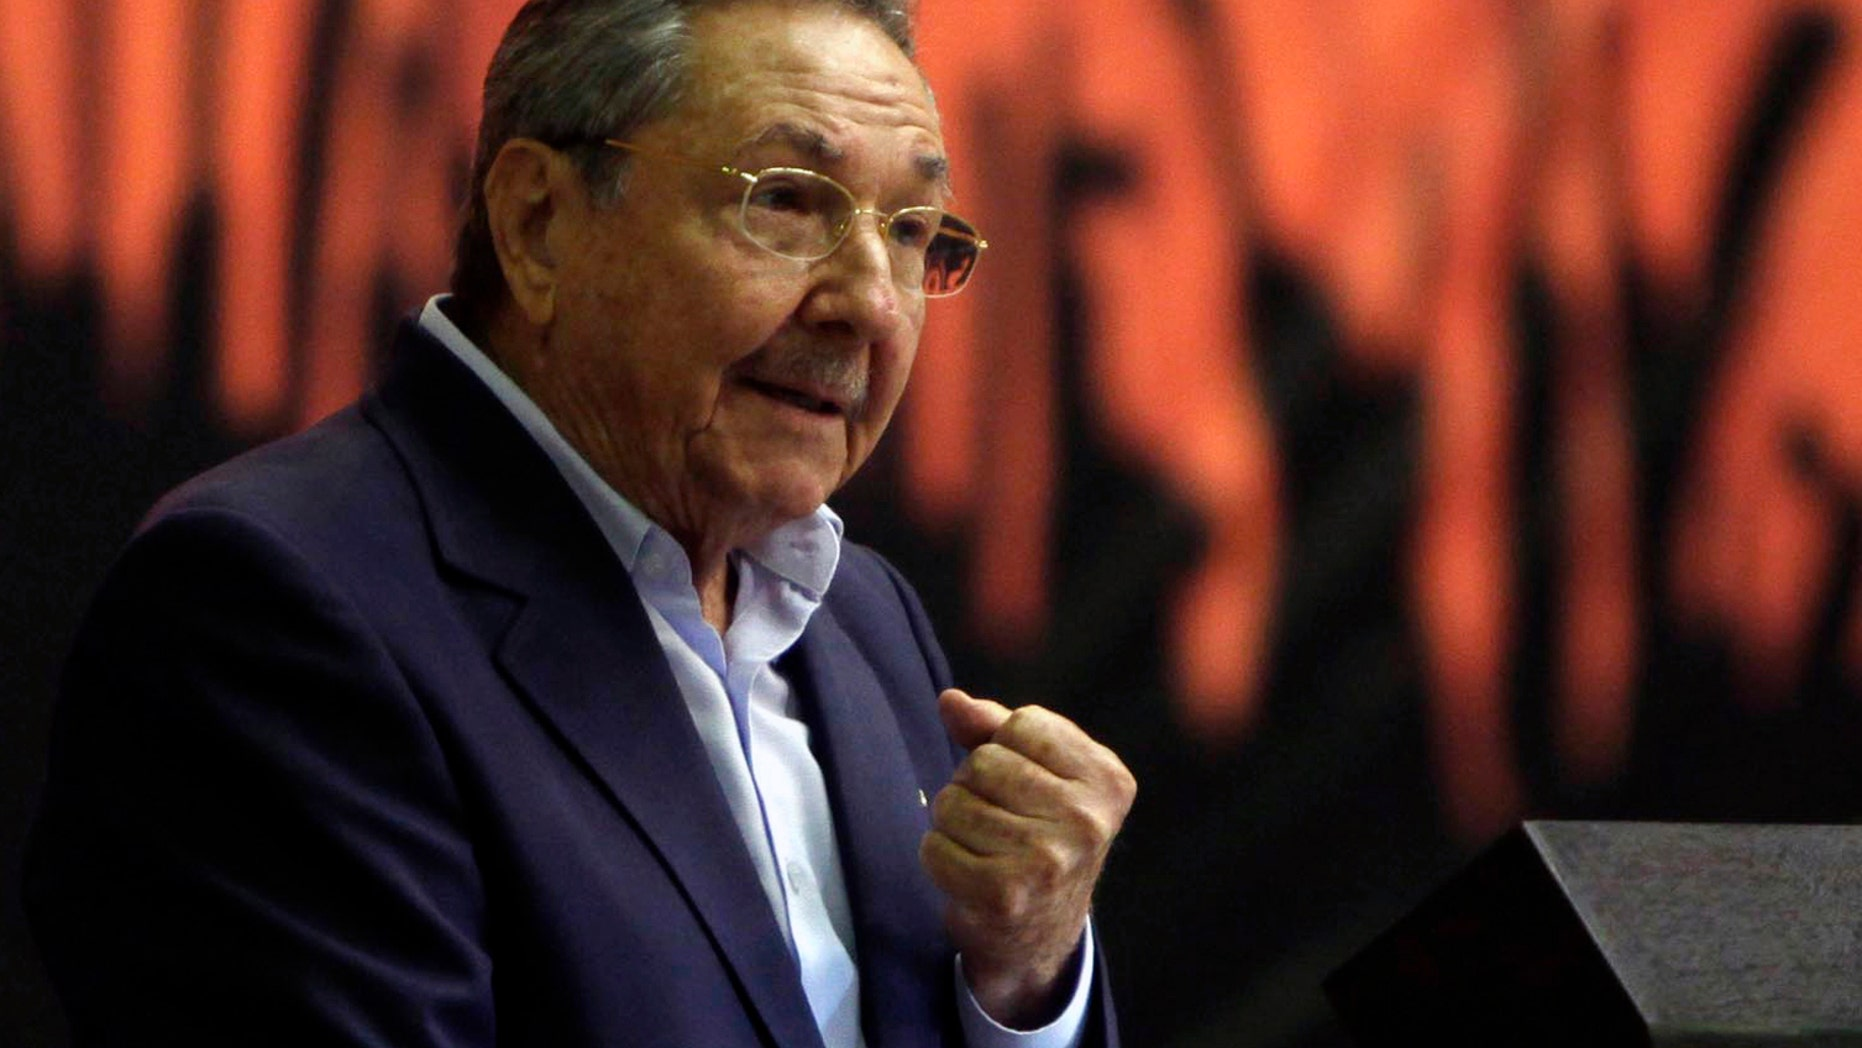 """Cuba's President Raul Castro speaks during the closing ceremony of the Communist Party Conference in Havana, Cuba, Saturday, Jan. 29, 2012. Cuba's Communist leaders vowed not to cede any ground to """"the enemy,"""" even as they pledged to fight corruption and continue overhauling the island's listing Marxist economy with an injection of free market reform.(AP Photo/Ismael Francisco, Prensa Latina)"""